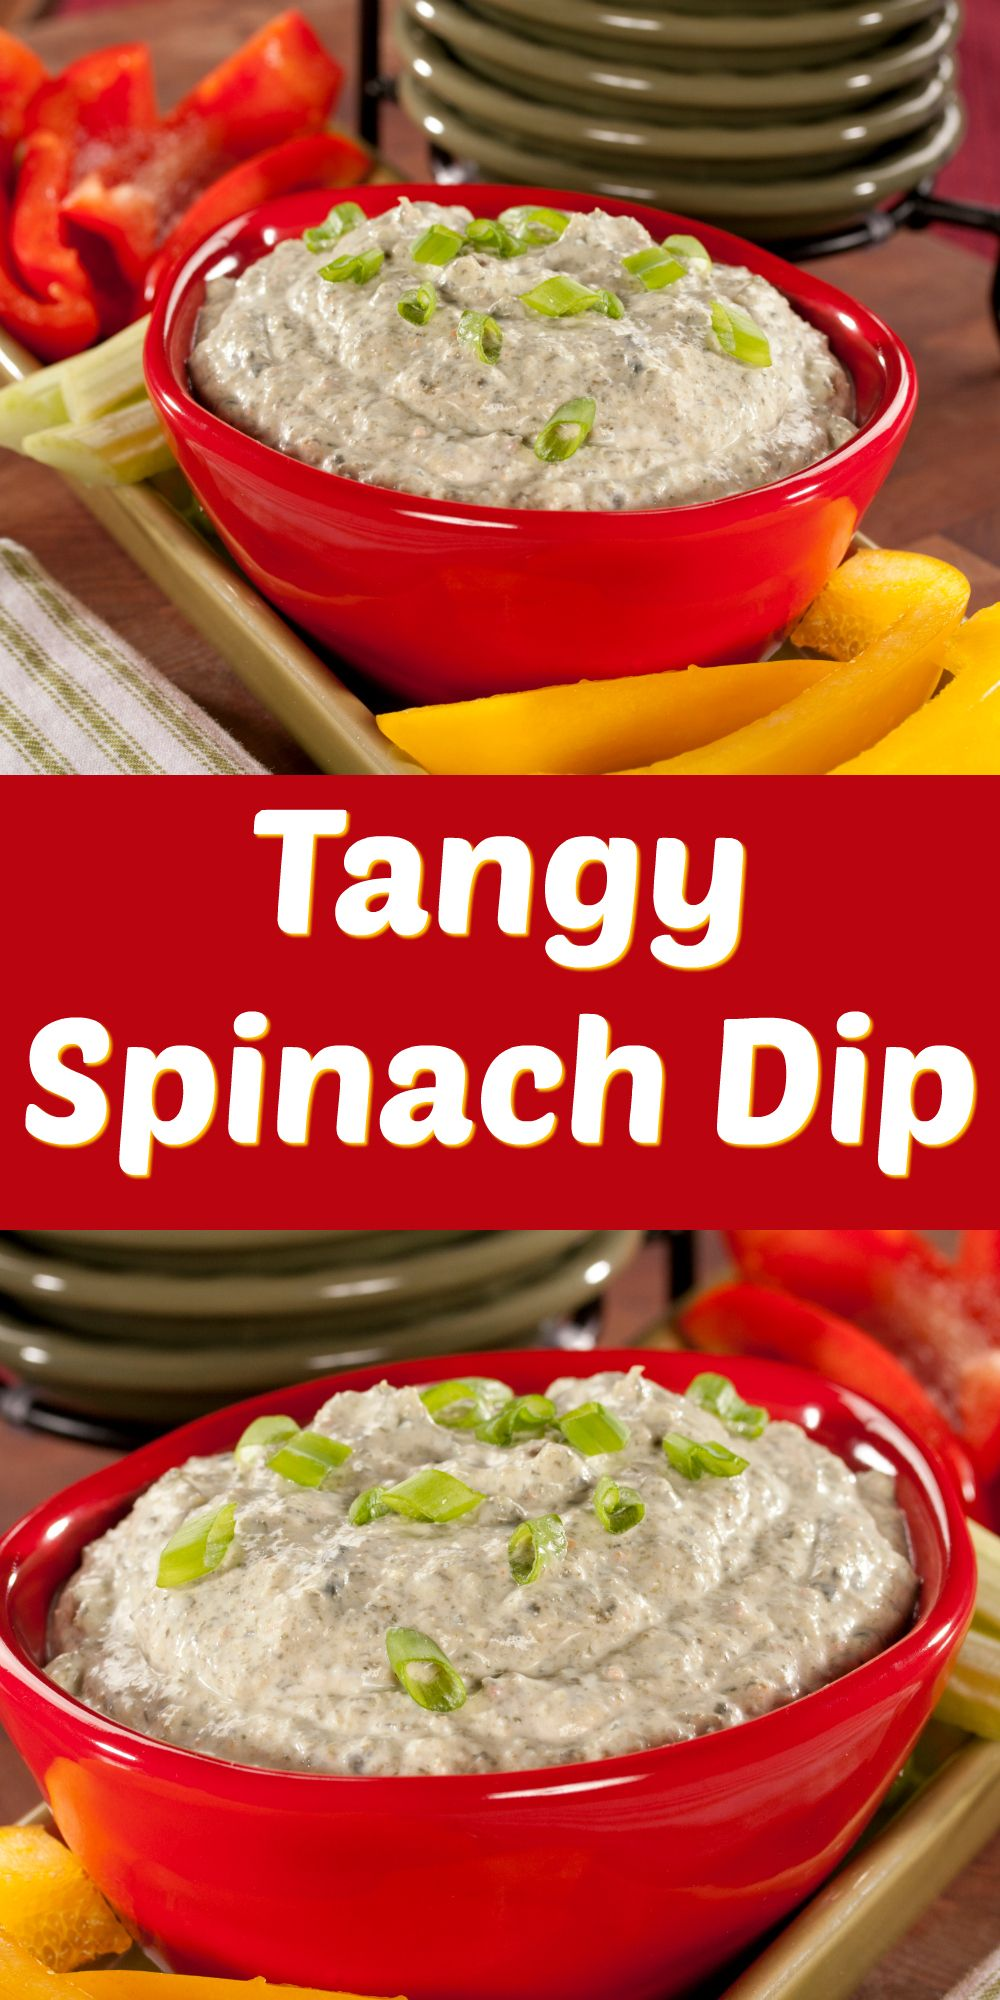 Tangy Spinach Dip Recipe Everyday Diabetic Recipes Diabetic